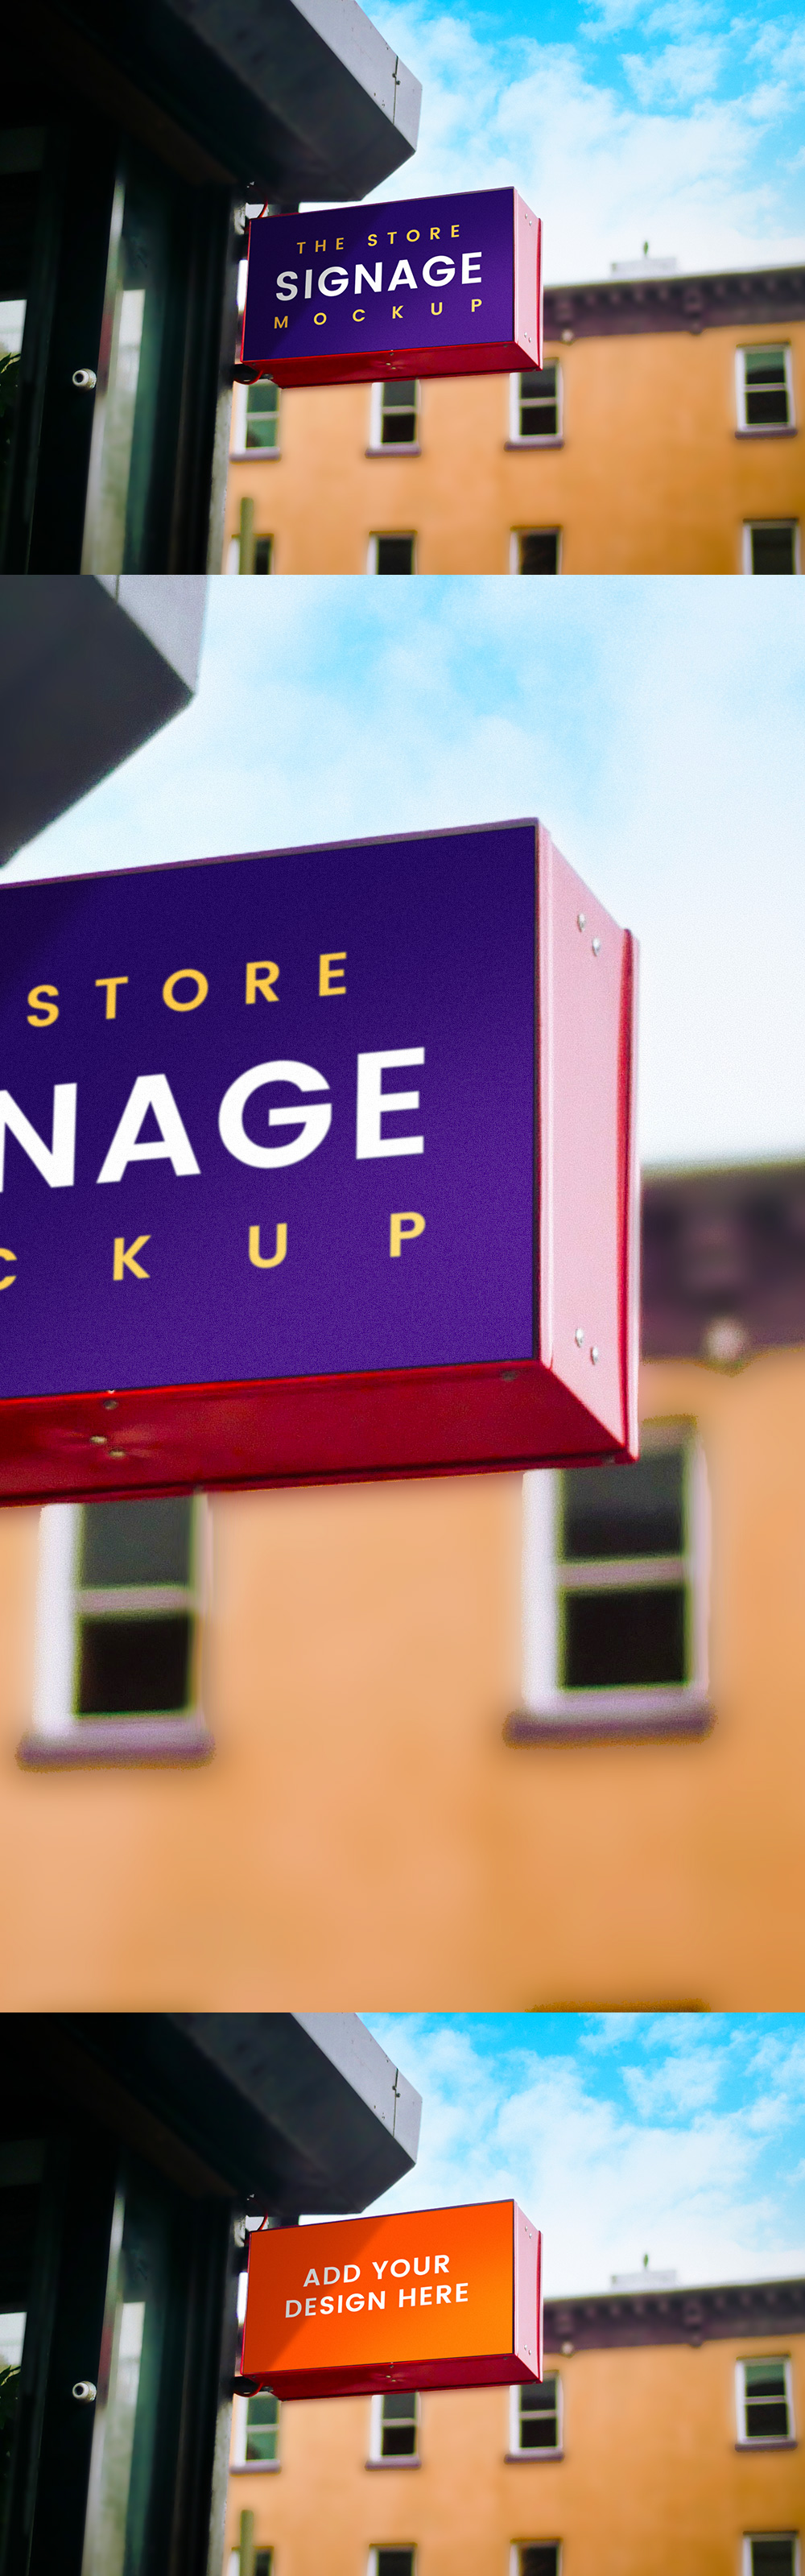 Outdoor Store Signage Mockup